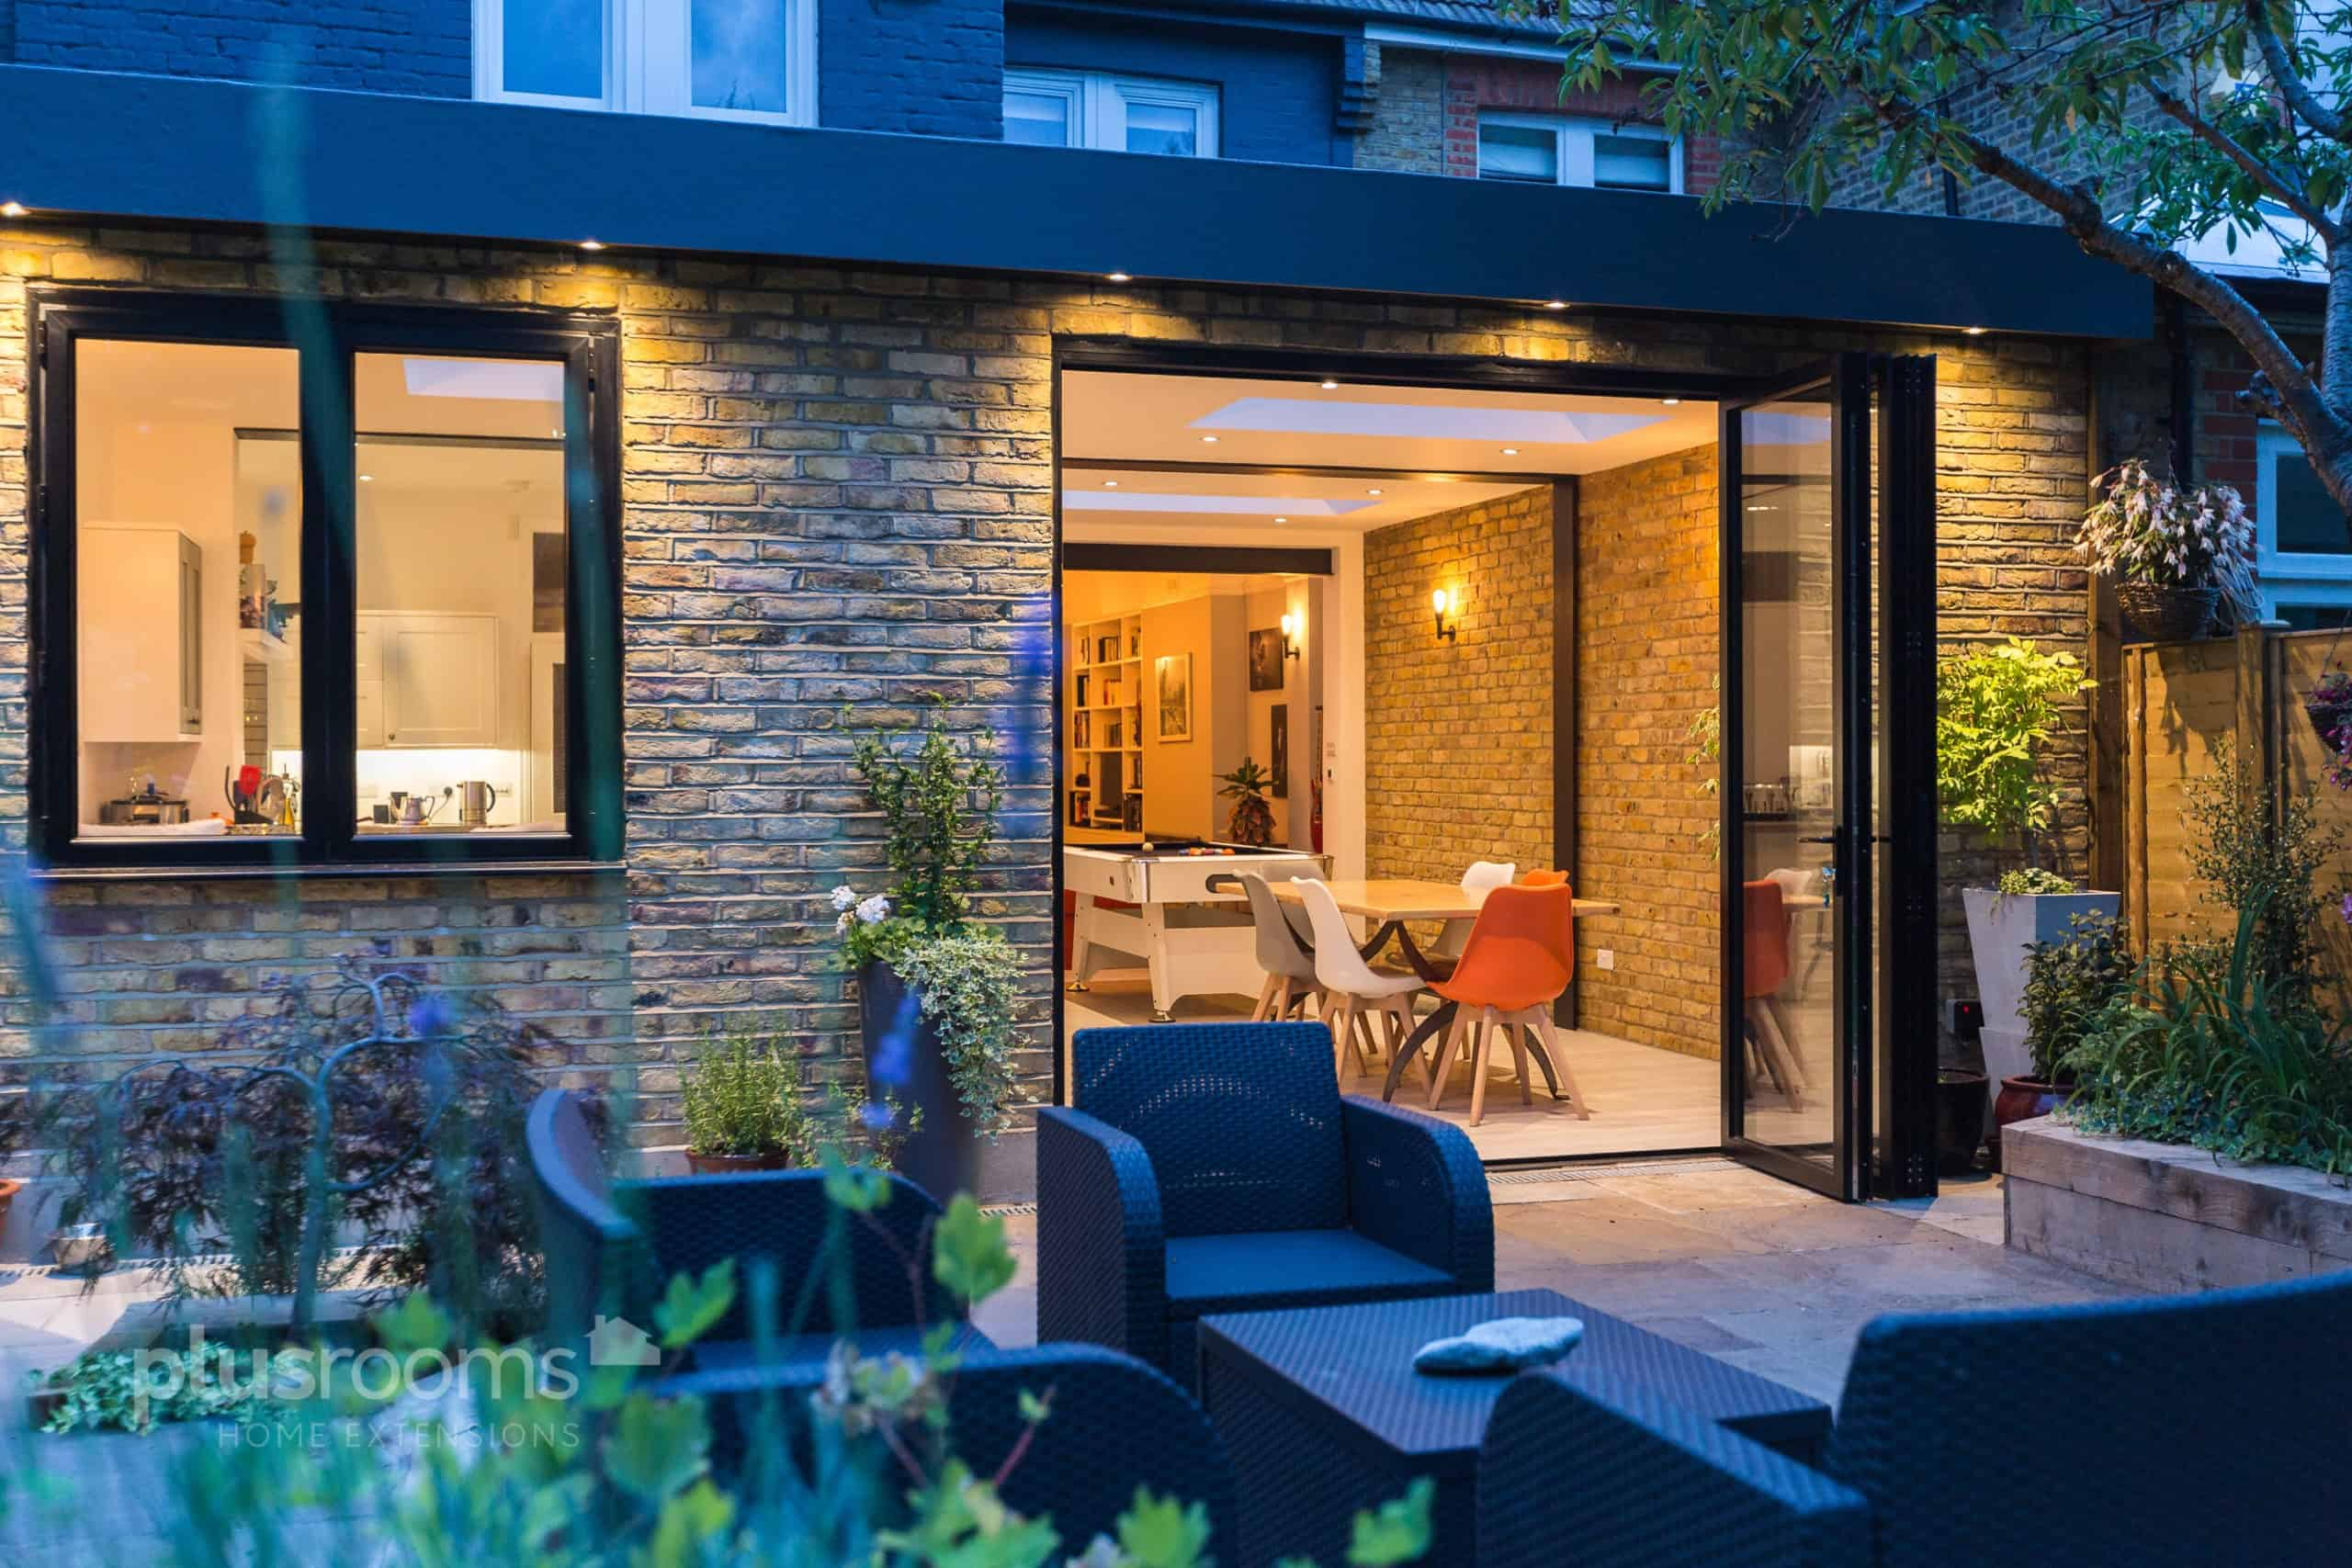 Our guide to planning permission for kitchen extensions